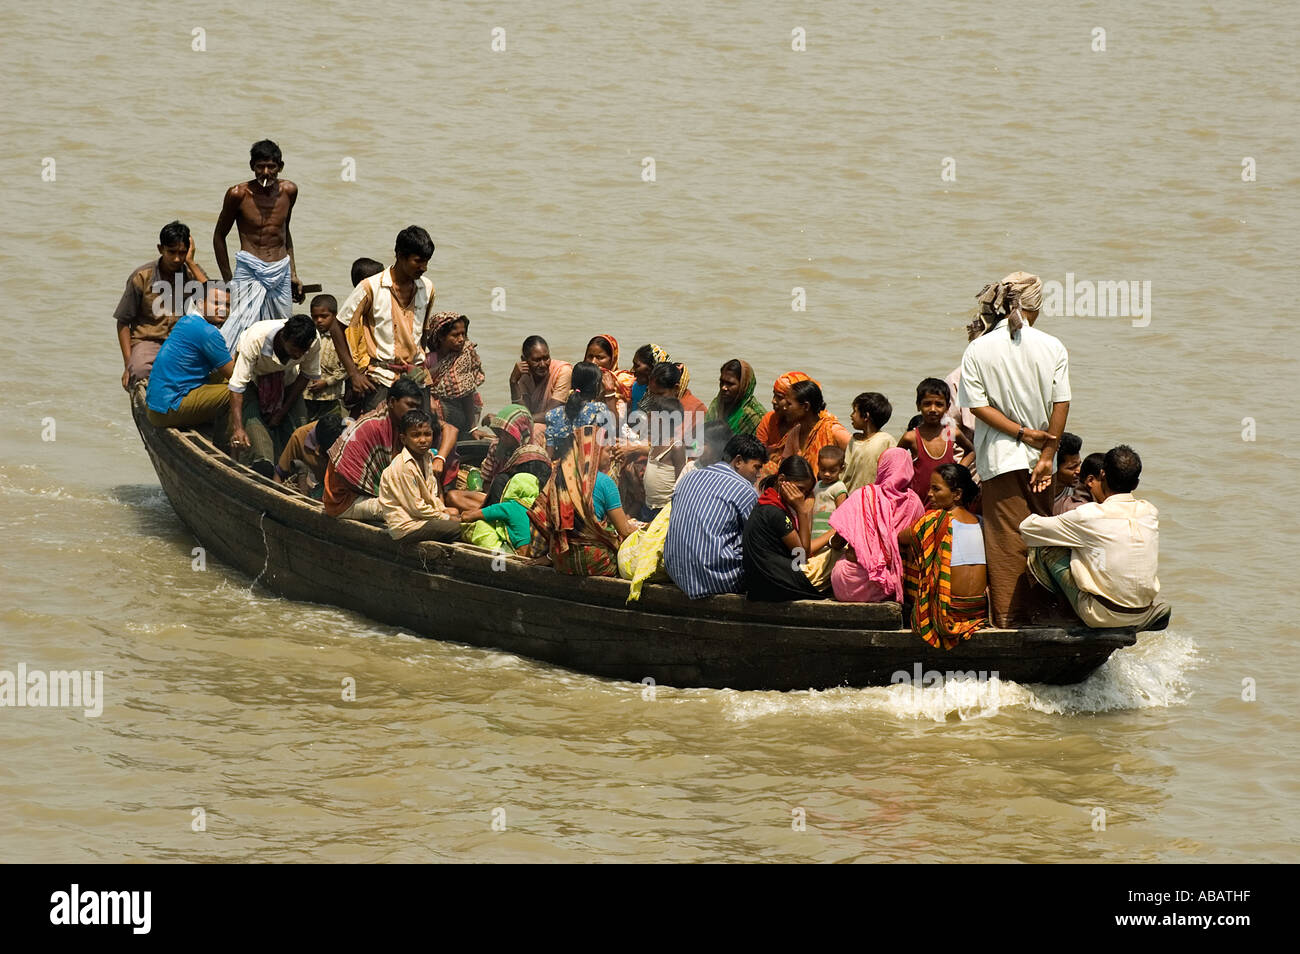 River transportation in small ferry boats in Khulna